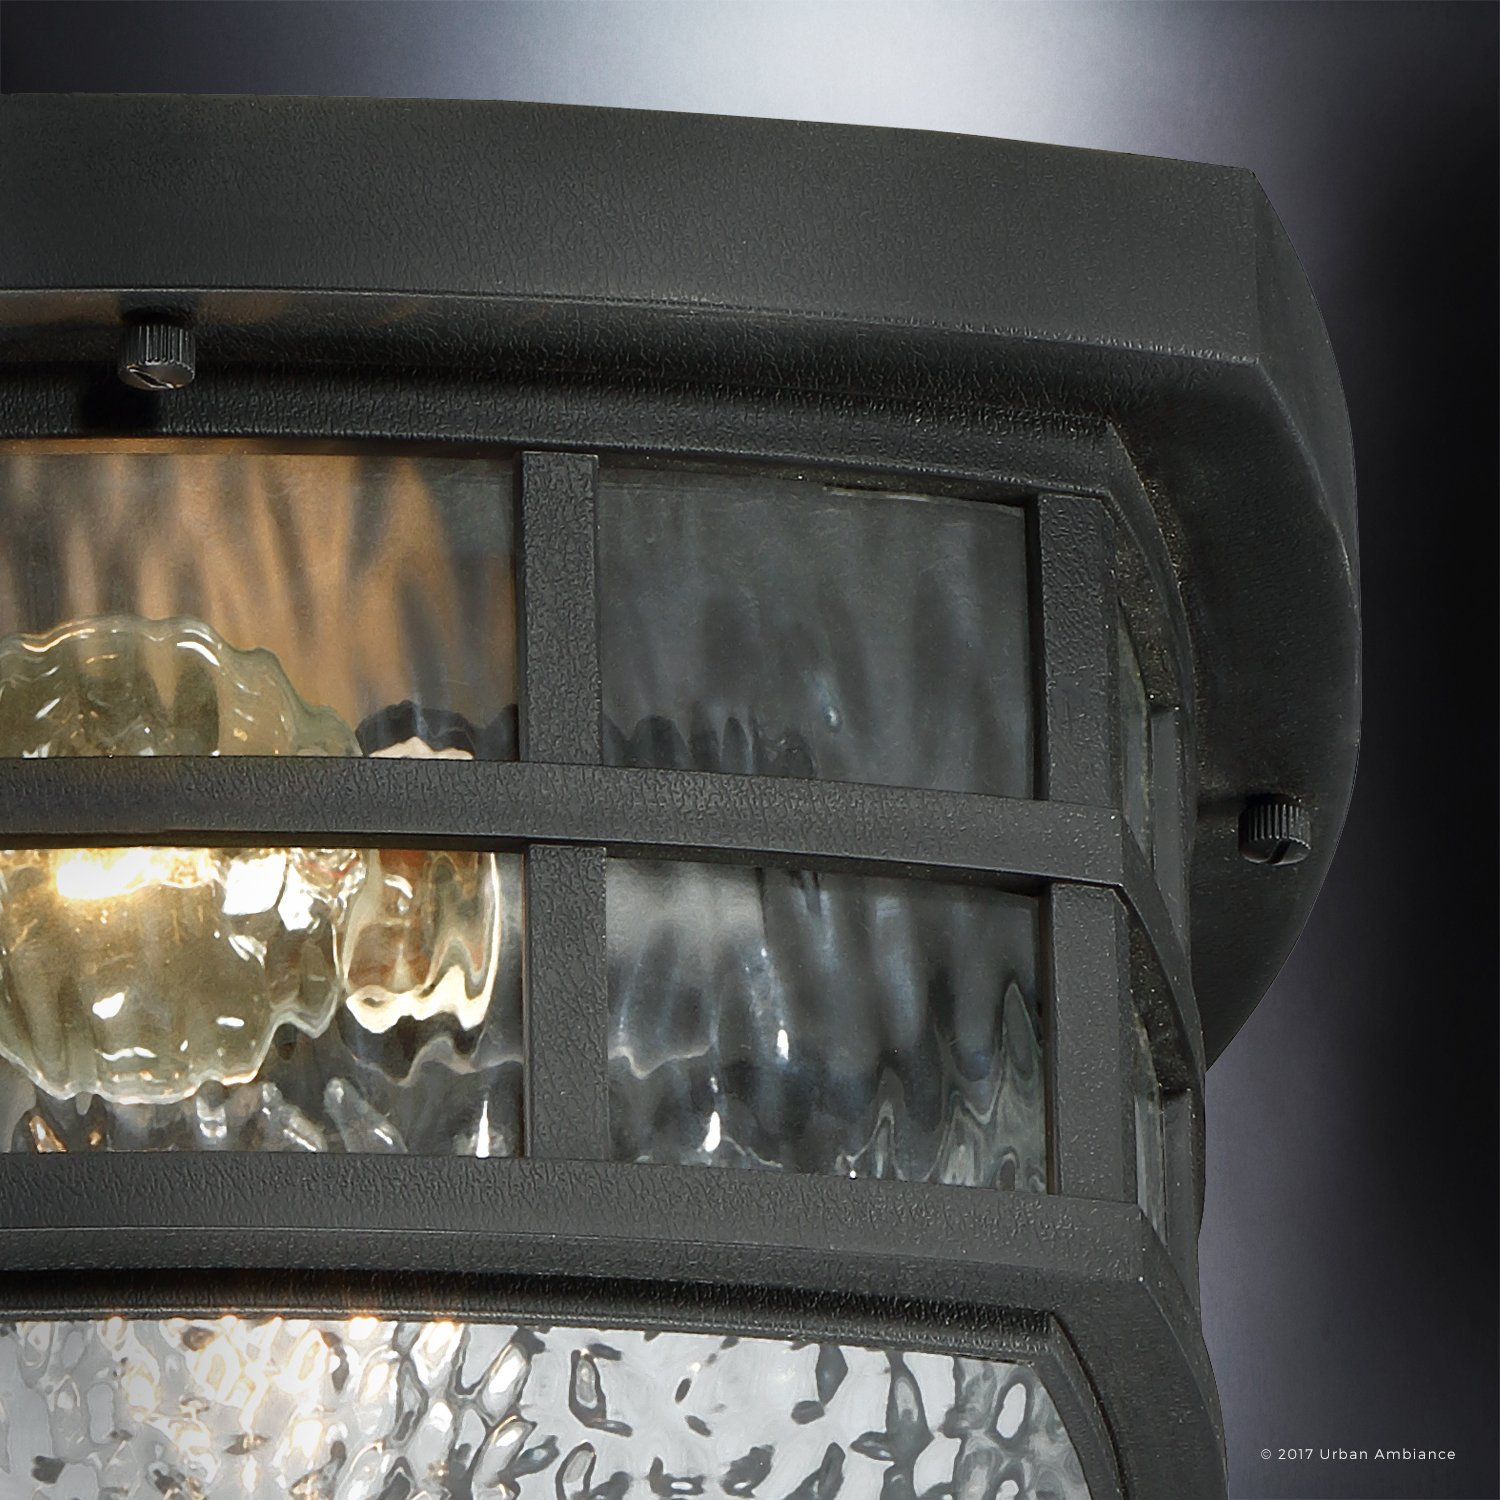 Luxury Craftsman Outdoor Ceiling Light, Small Size: 5.75''H x 12''W, with Tudor Style Elements, Highly-Detailed Design, High-End Black Silk Finish and Water Glass, UQL1248 by Urban Ambiance by Urban Ambiance (Image #4)